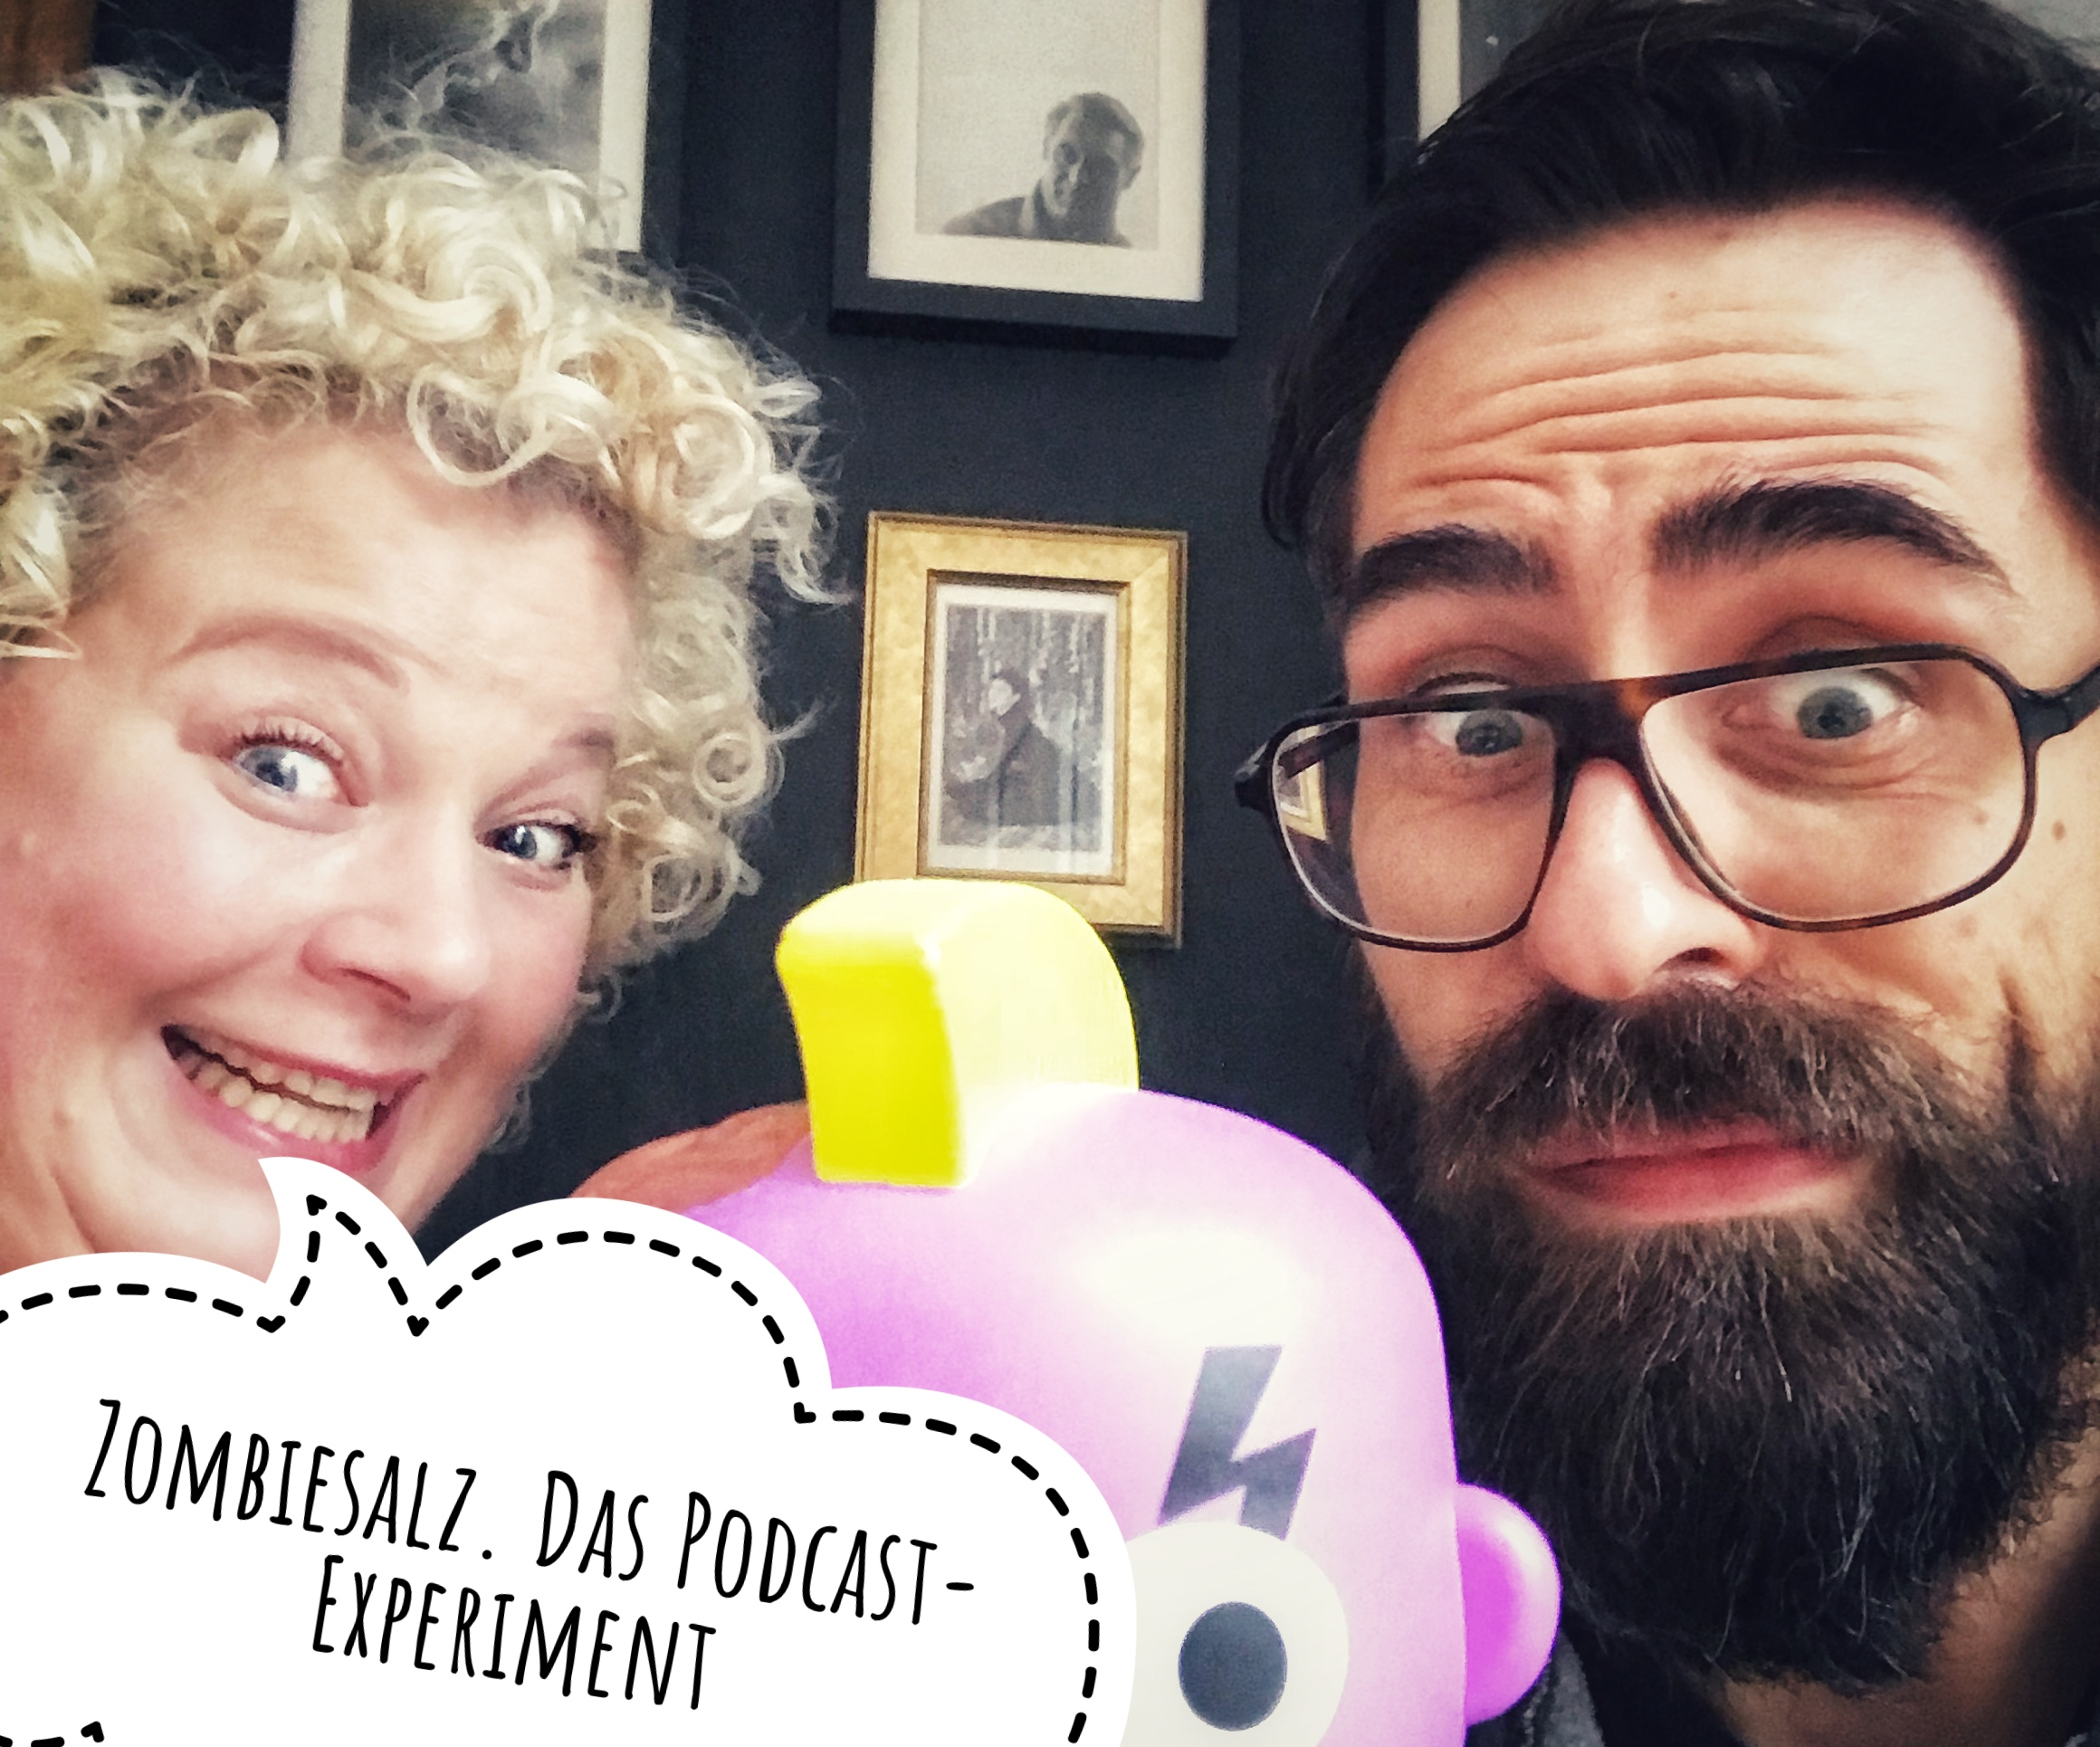 Zombiesalz: Das Podcast Experiment